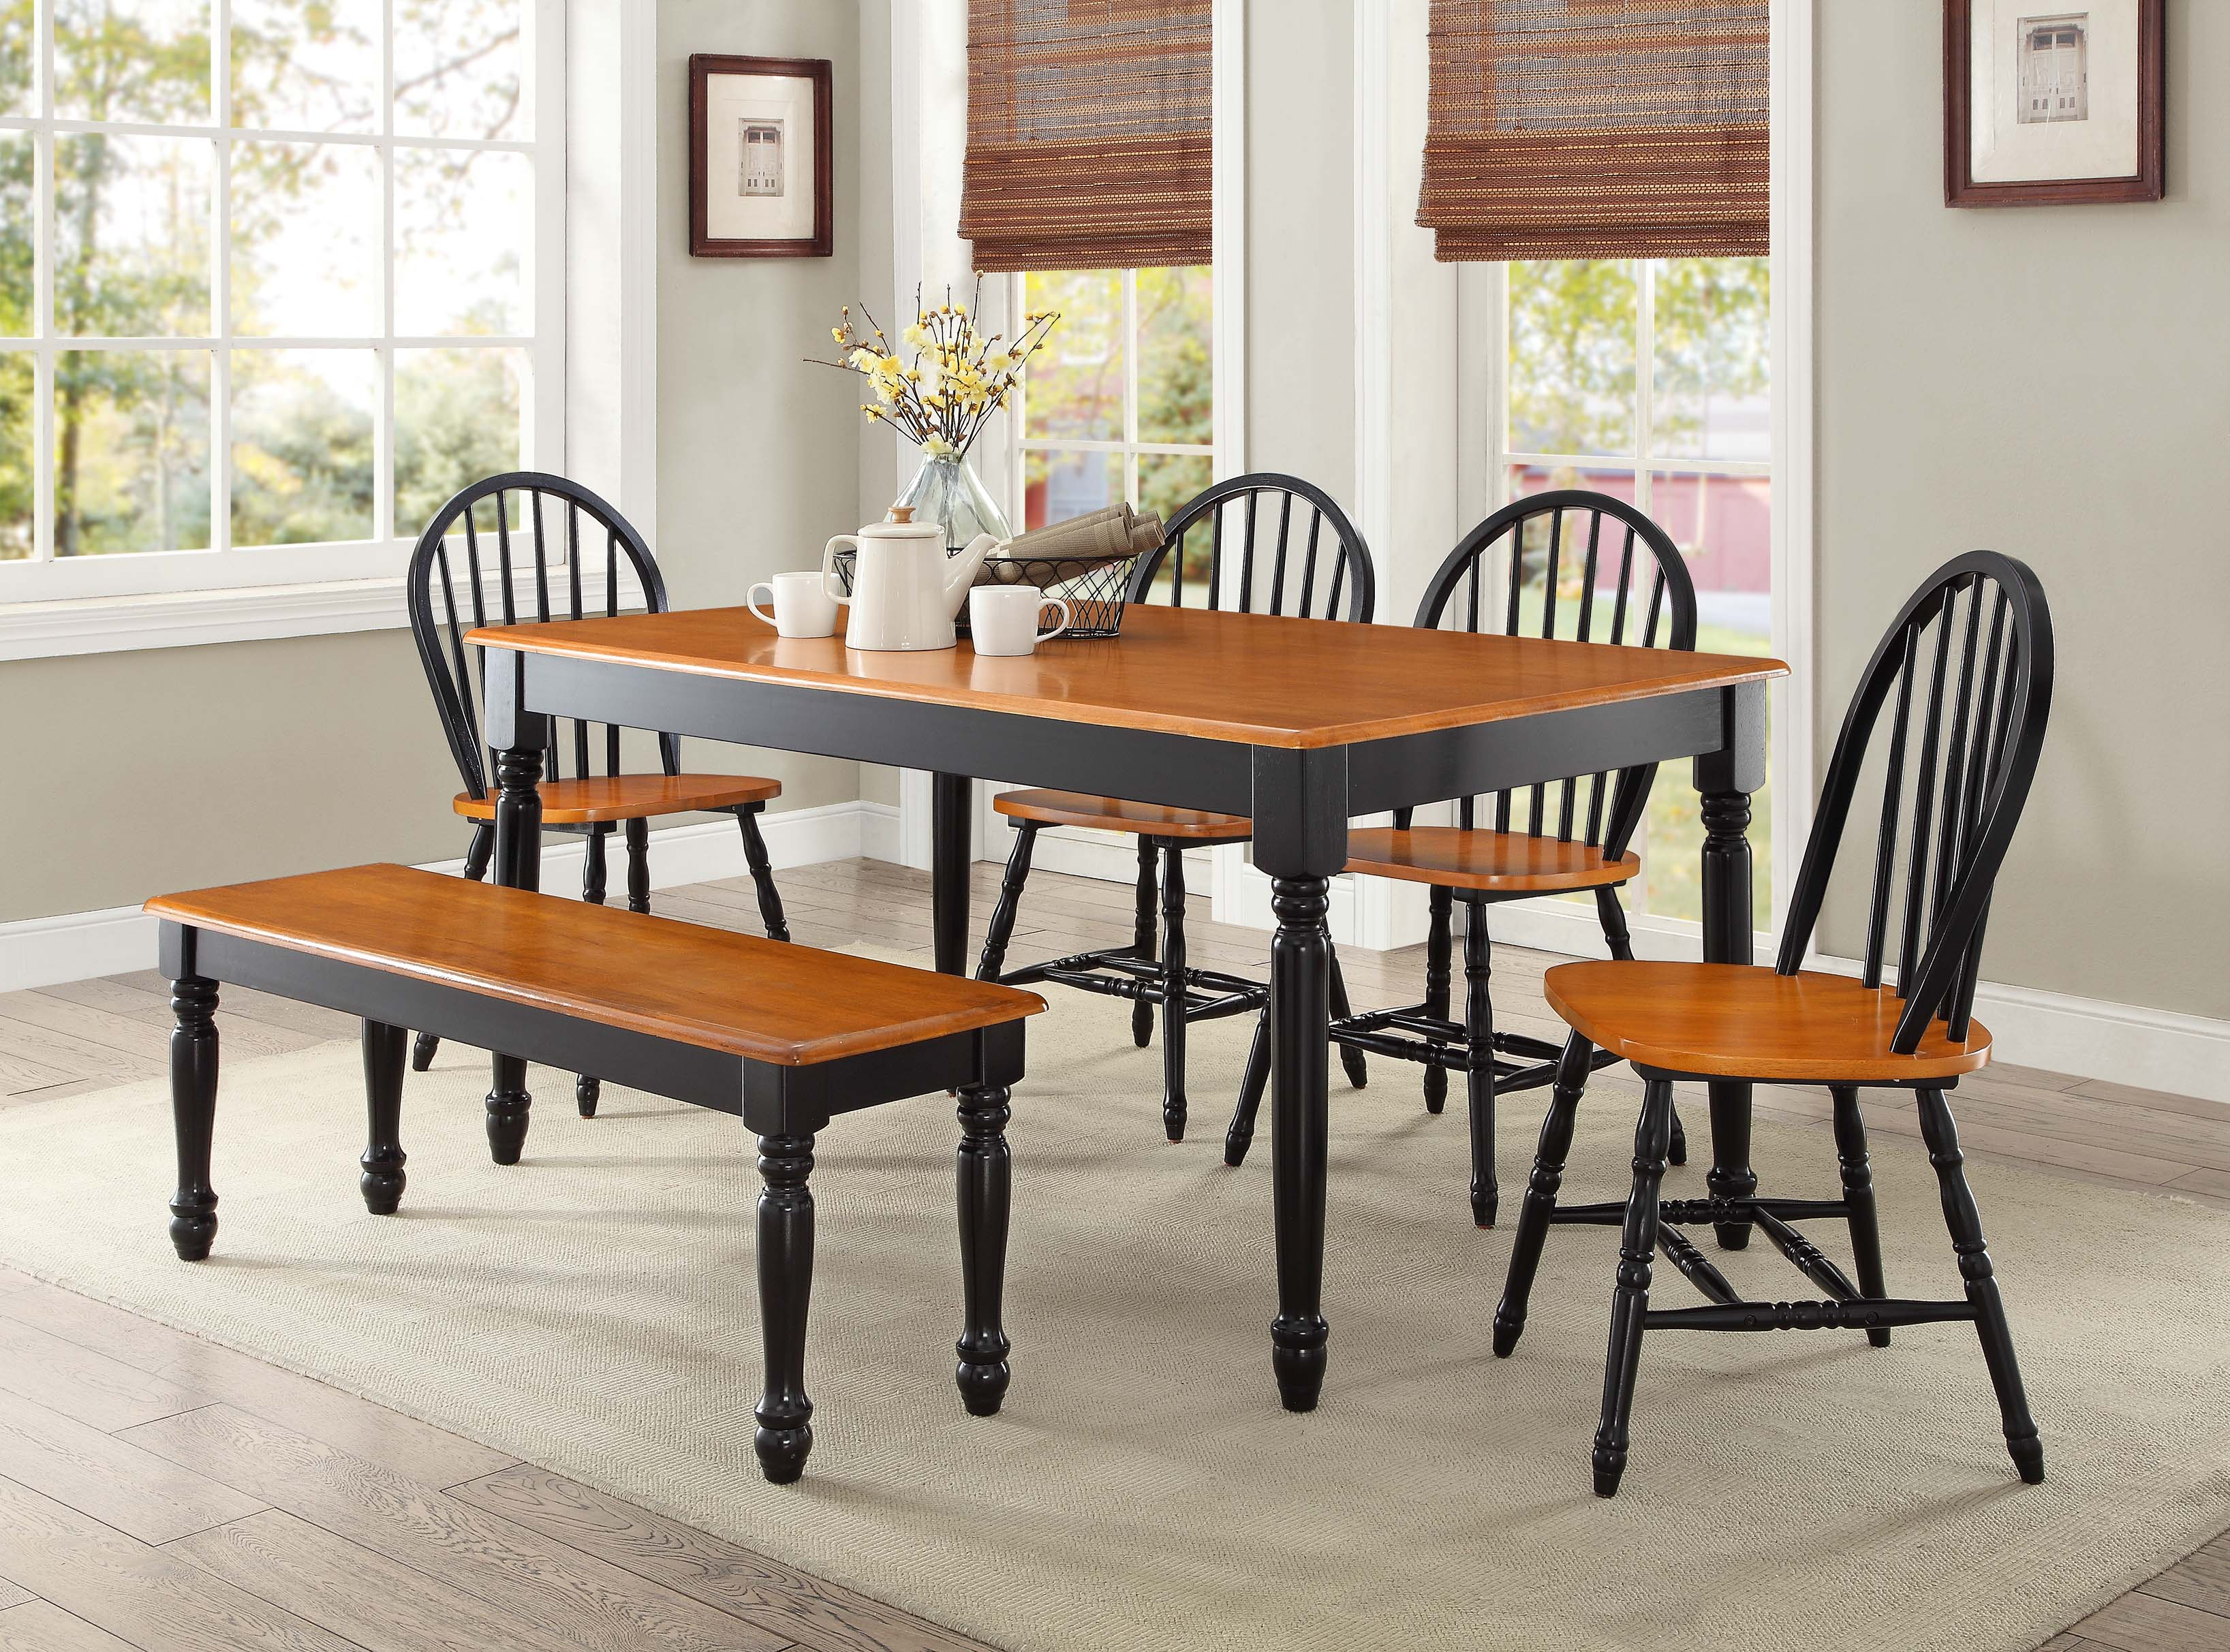 dining room table and chair sets kitchen u0026 dining furniture - walmart.com qepyvoe